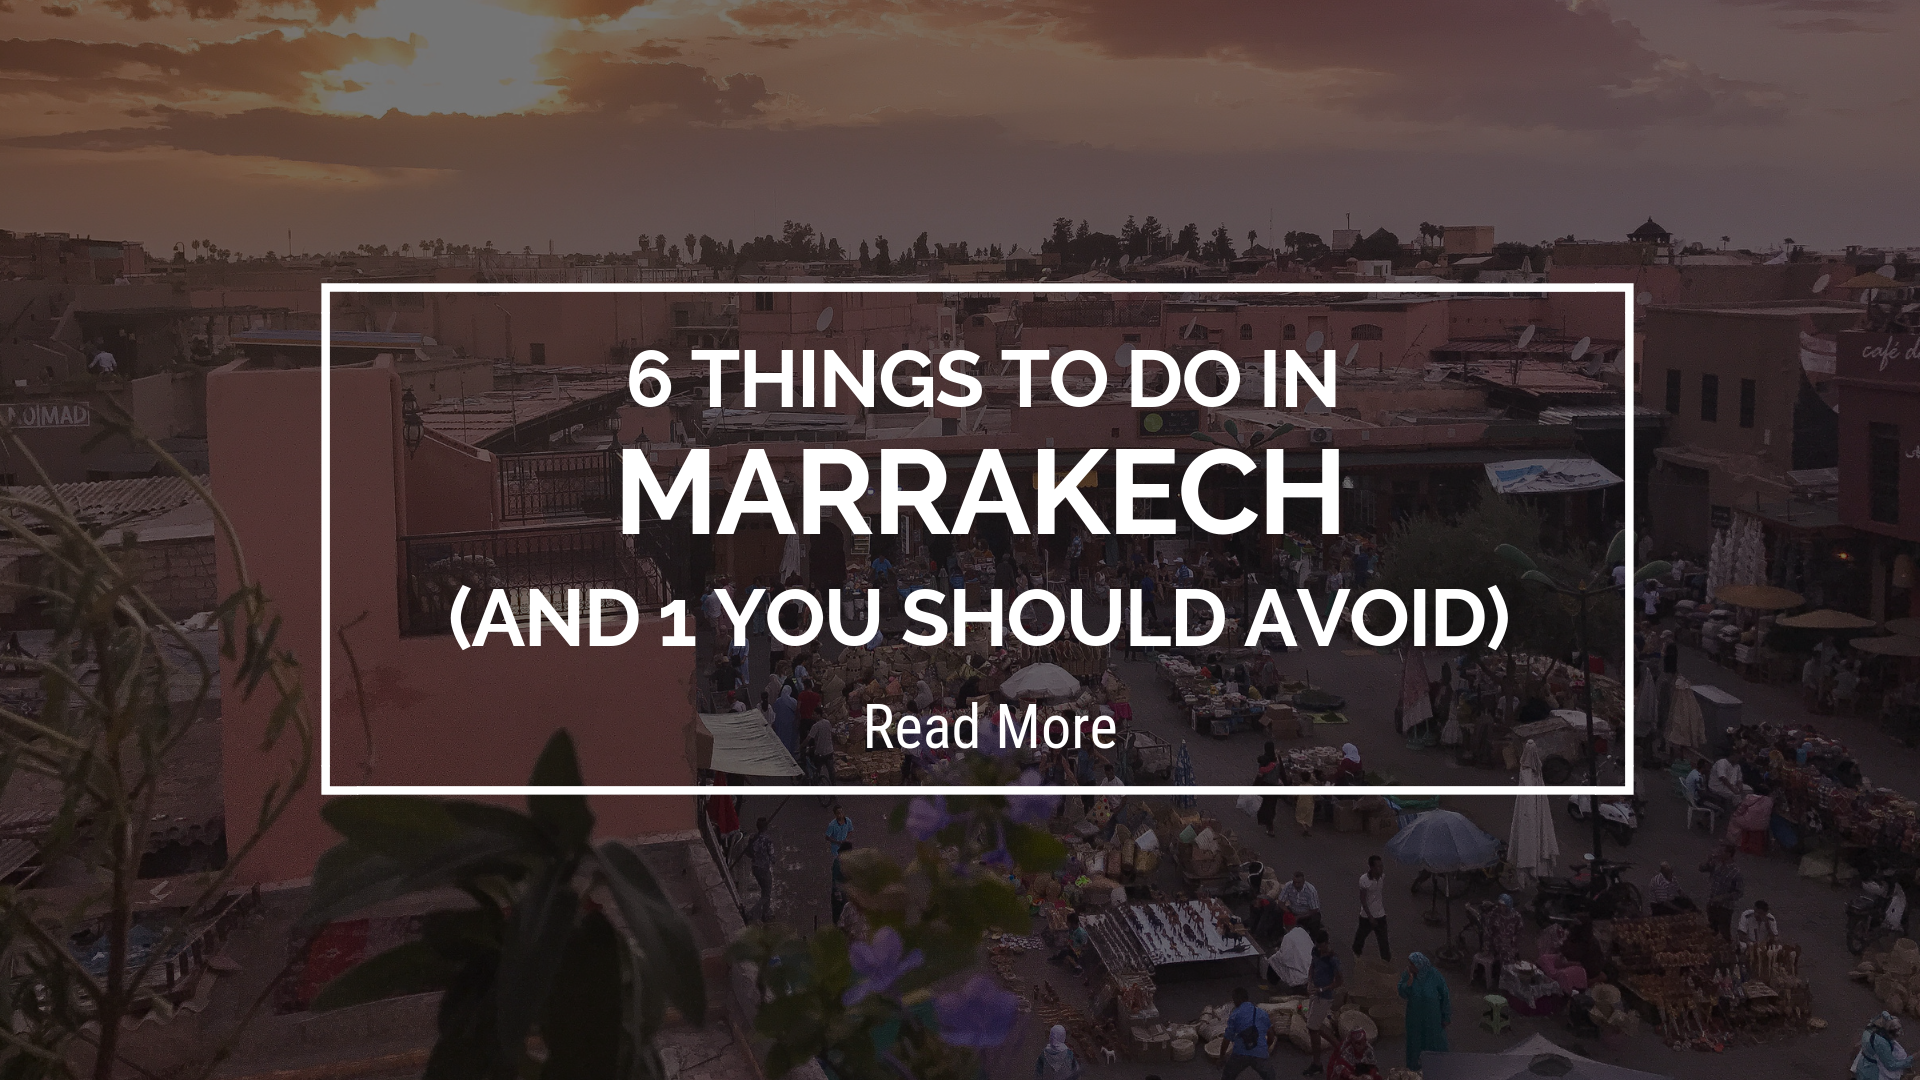 Marrakech Graphic.png